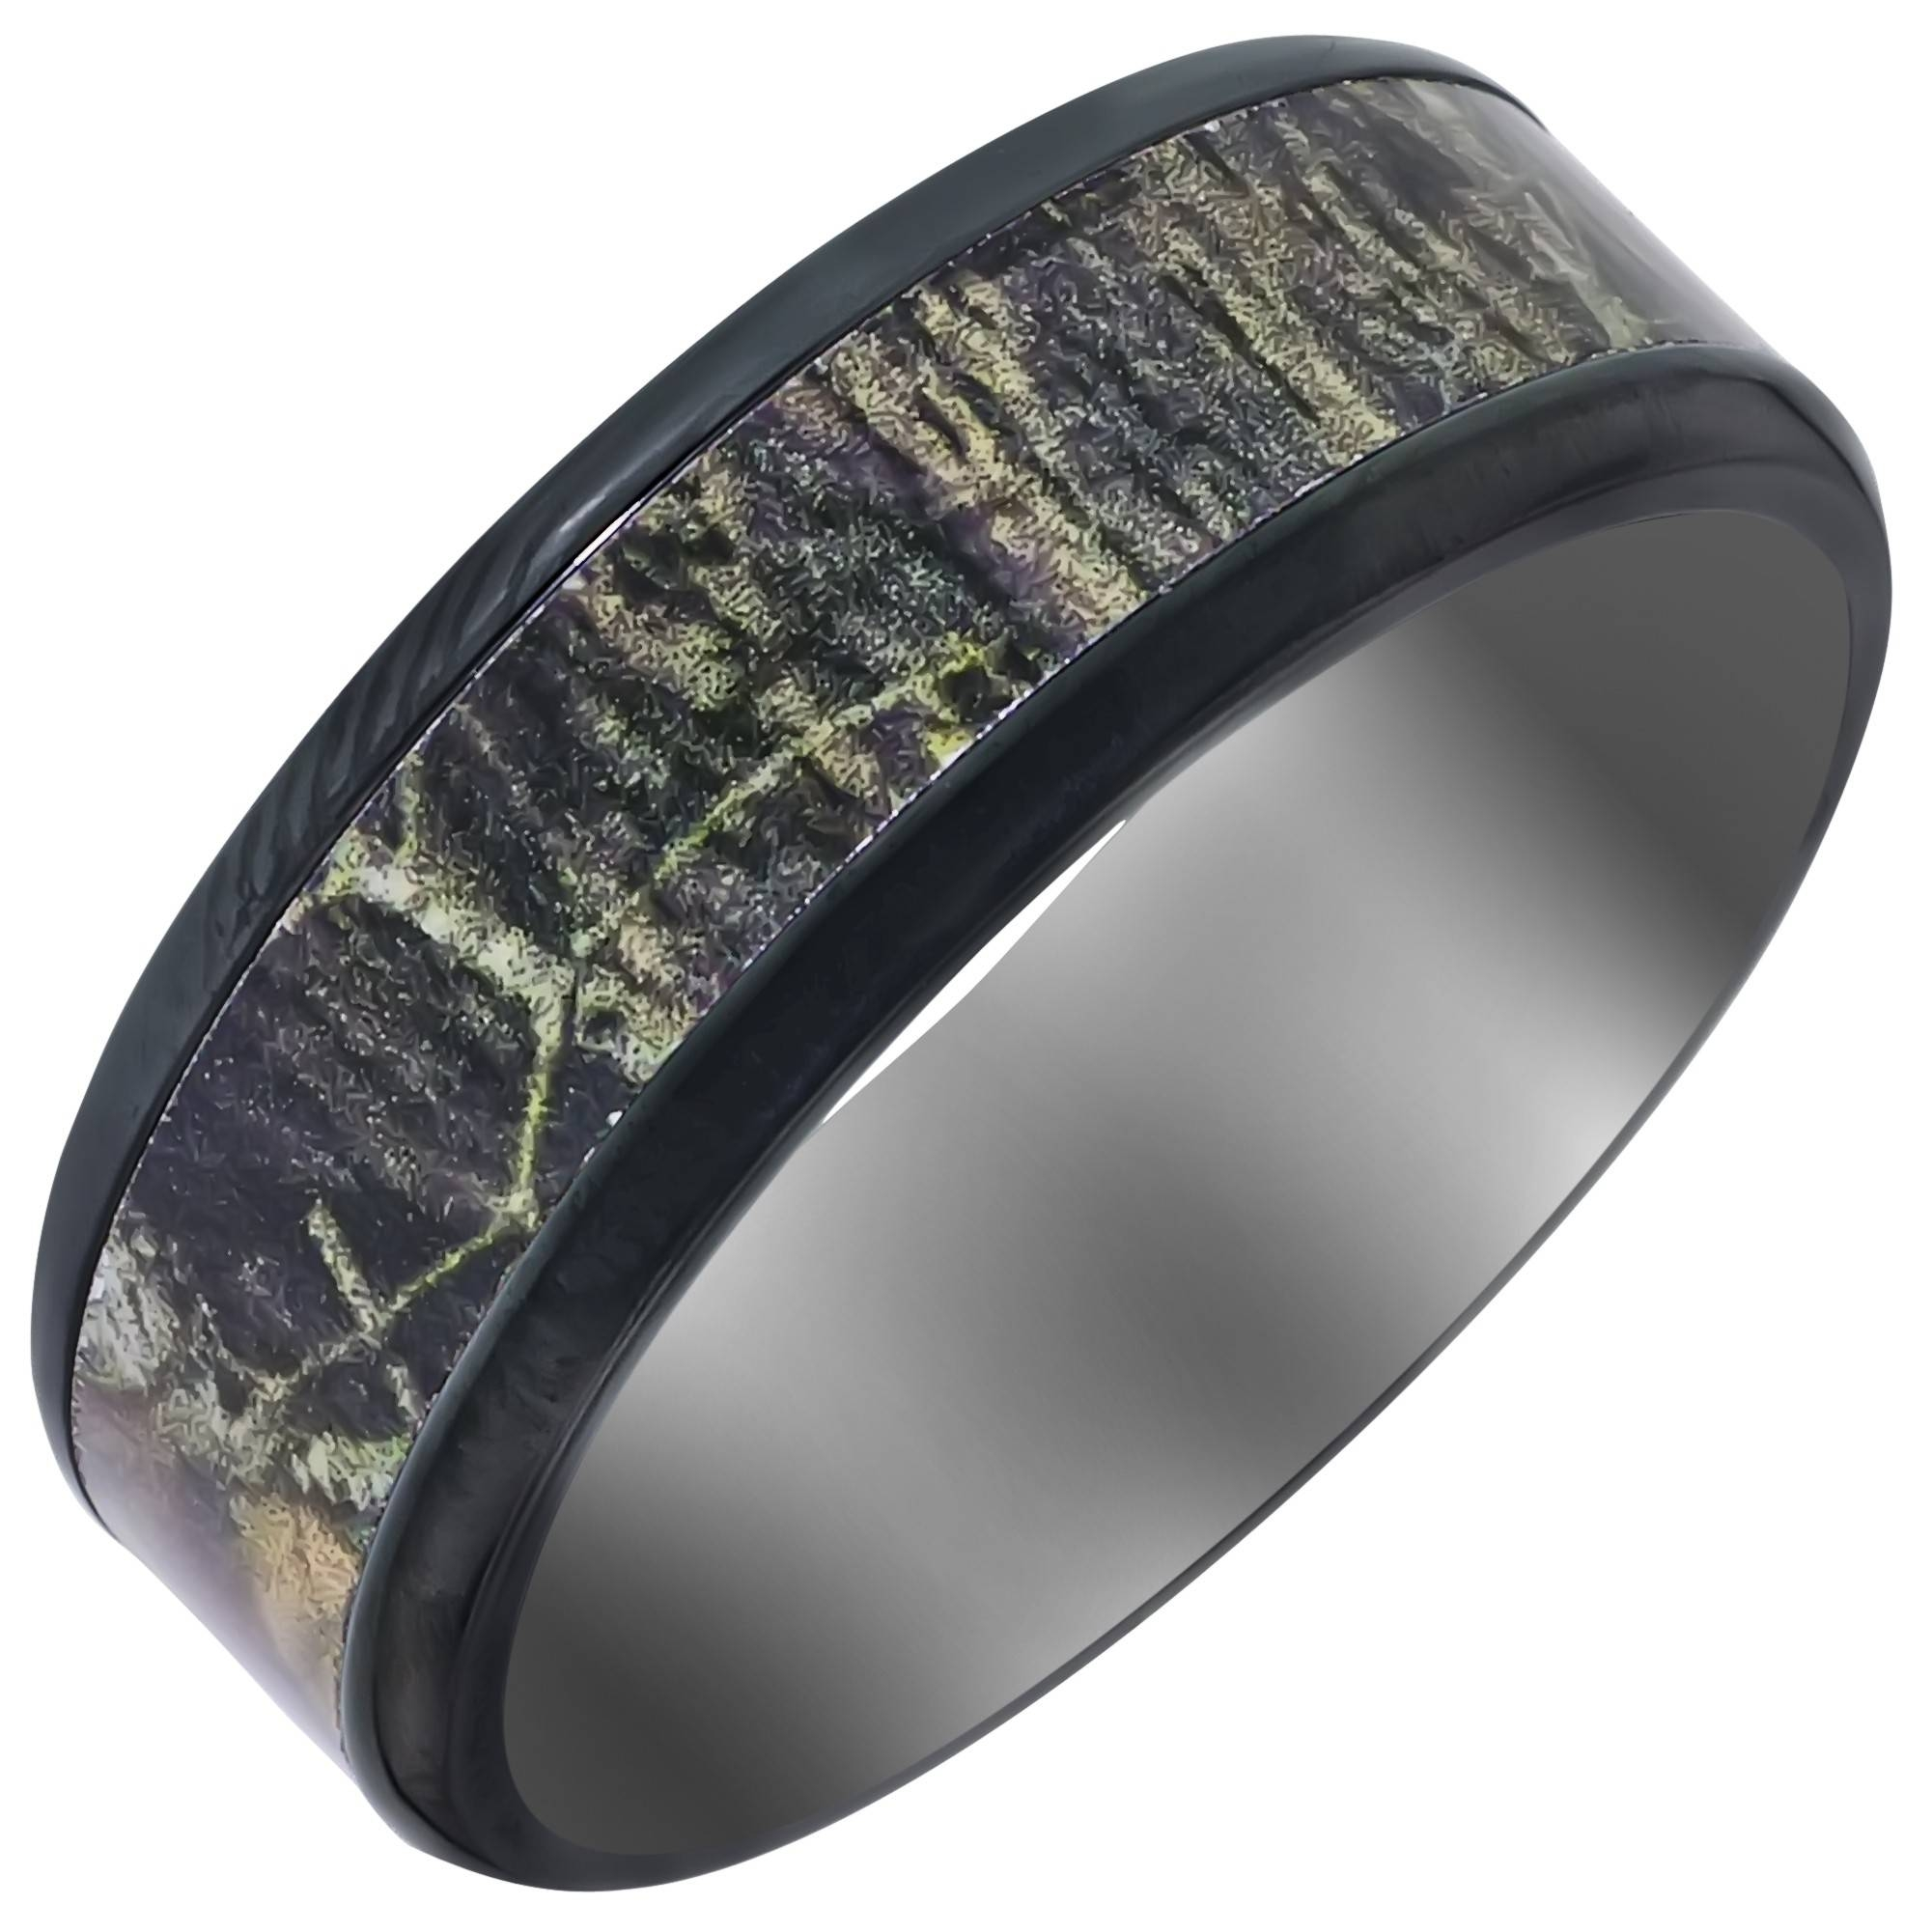 Mens Zirconium Mossyoak Camo Wedding Band (8mm) Intended For Men's Hunting Wedding Bands (View 4 of 15)